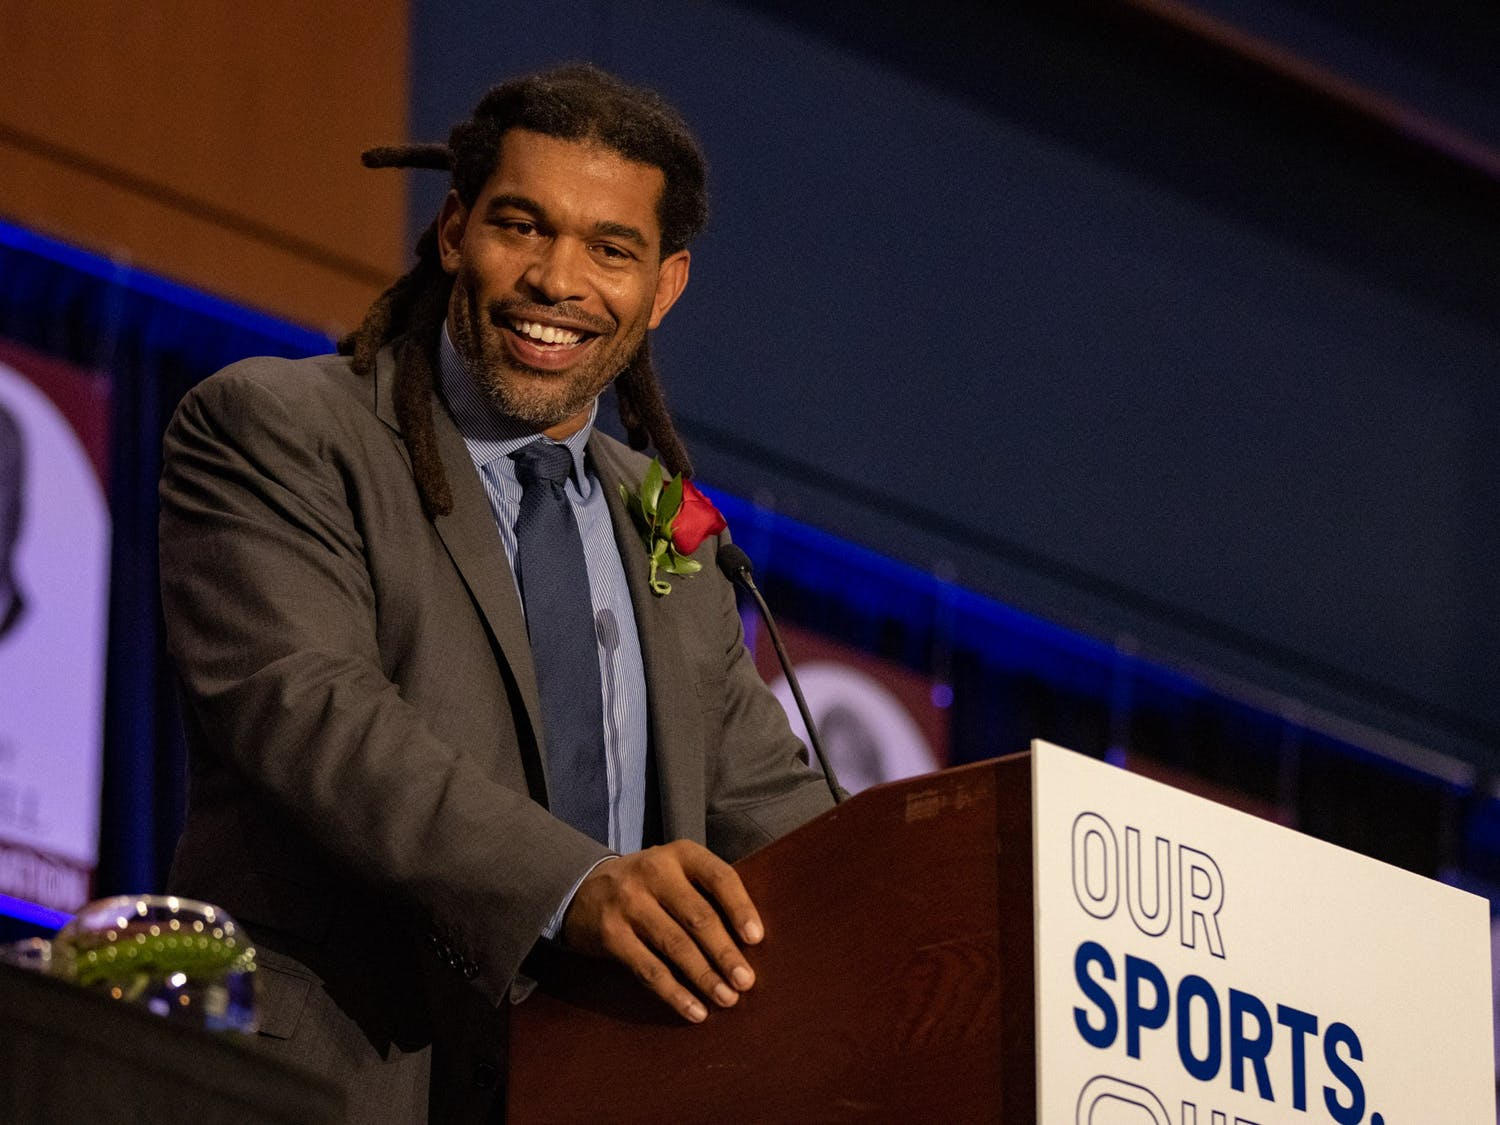 Julius Peppers delivers an acceptance speech at the North Carolina Sports Hall of Fame induction ceremony Friday.